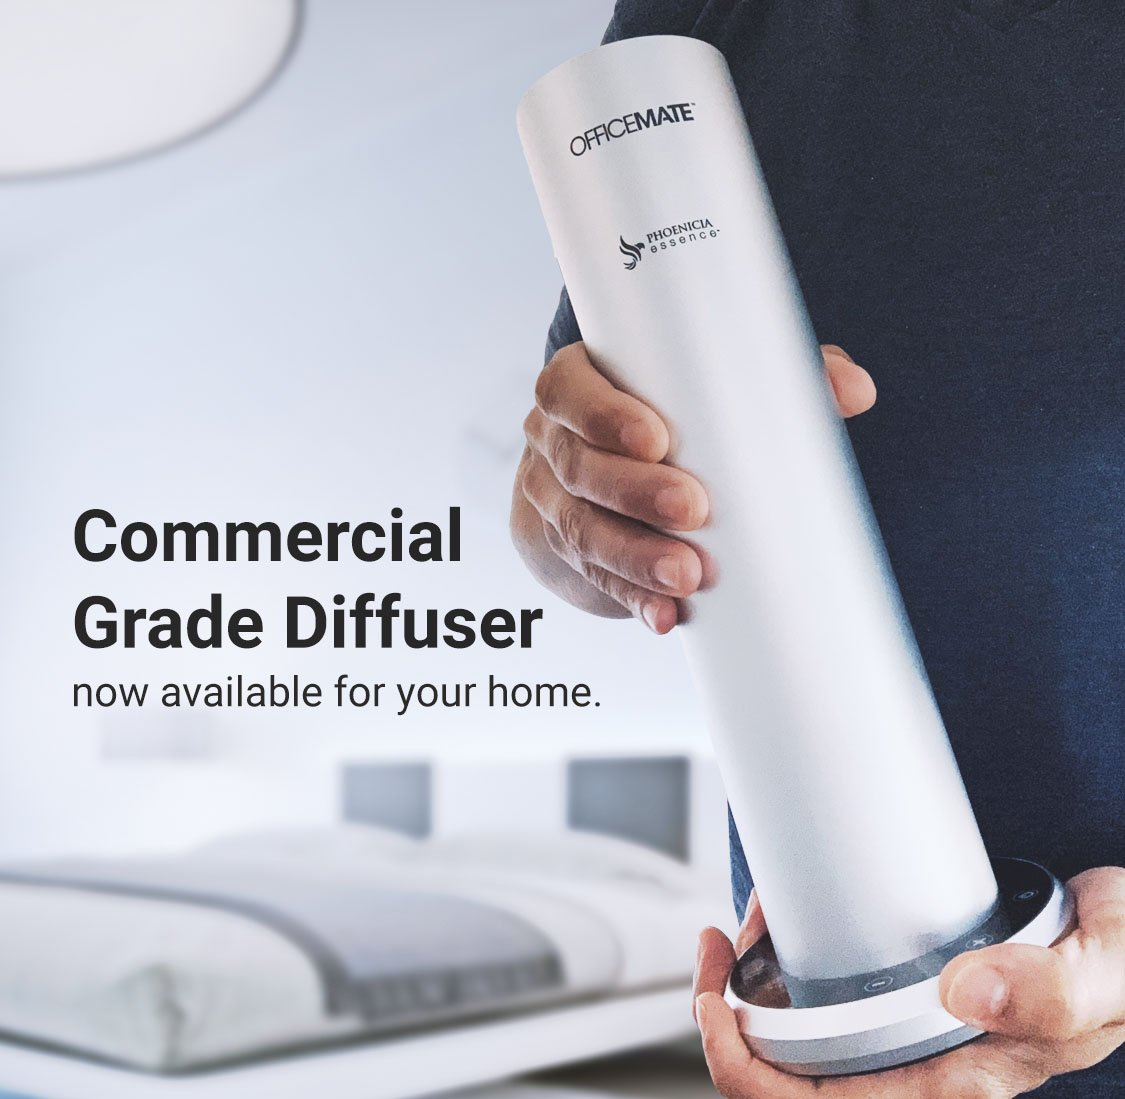 OfficeMate Home Fragrance Diffuser Features Image